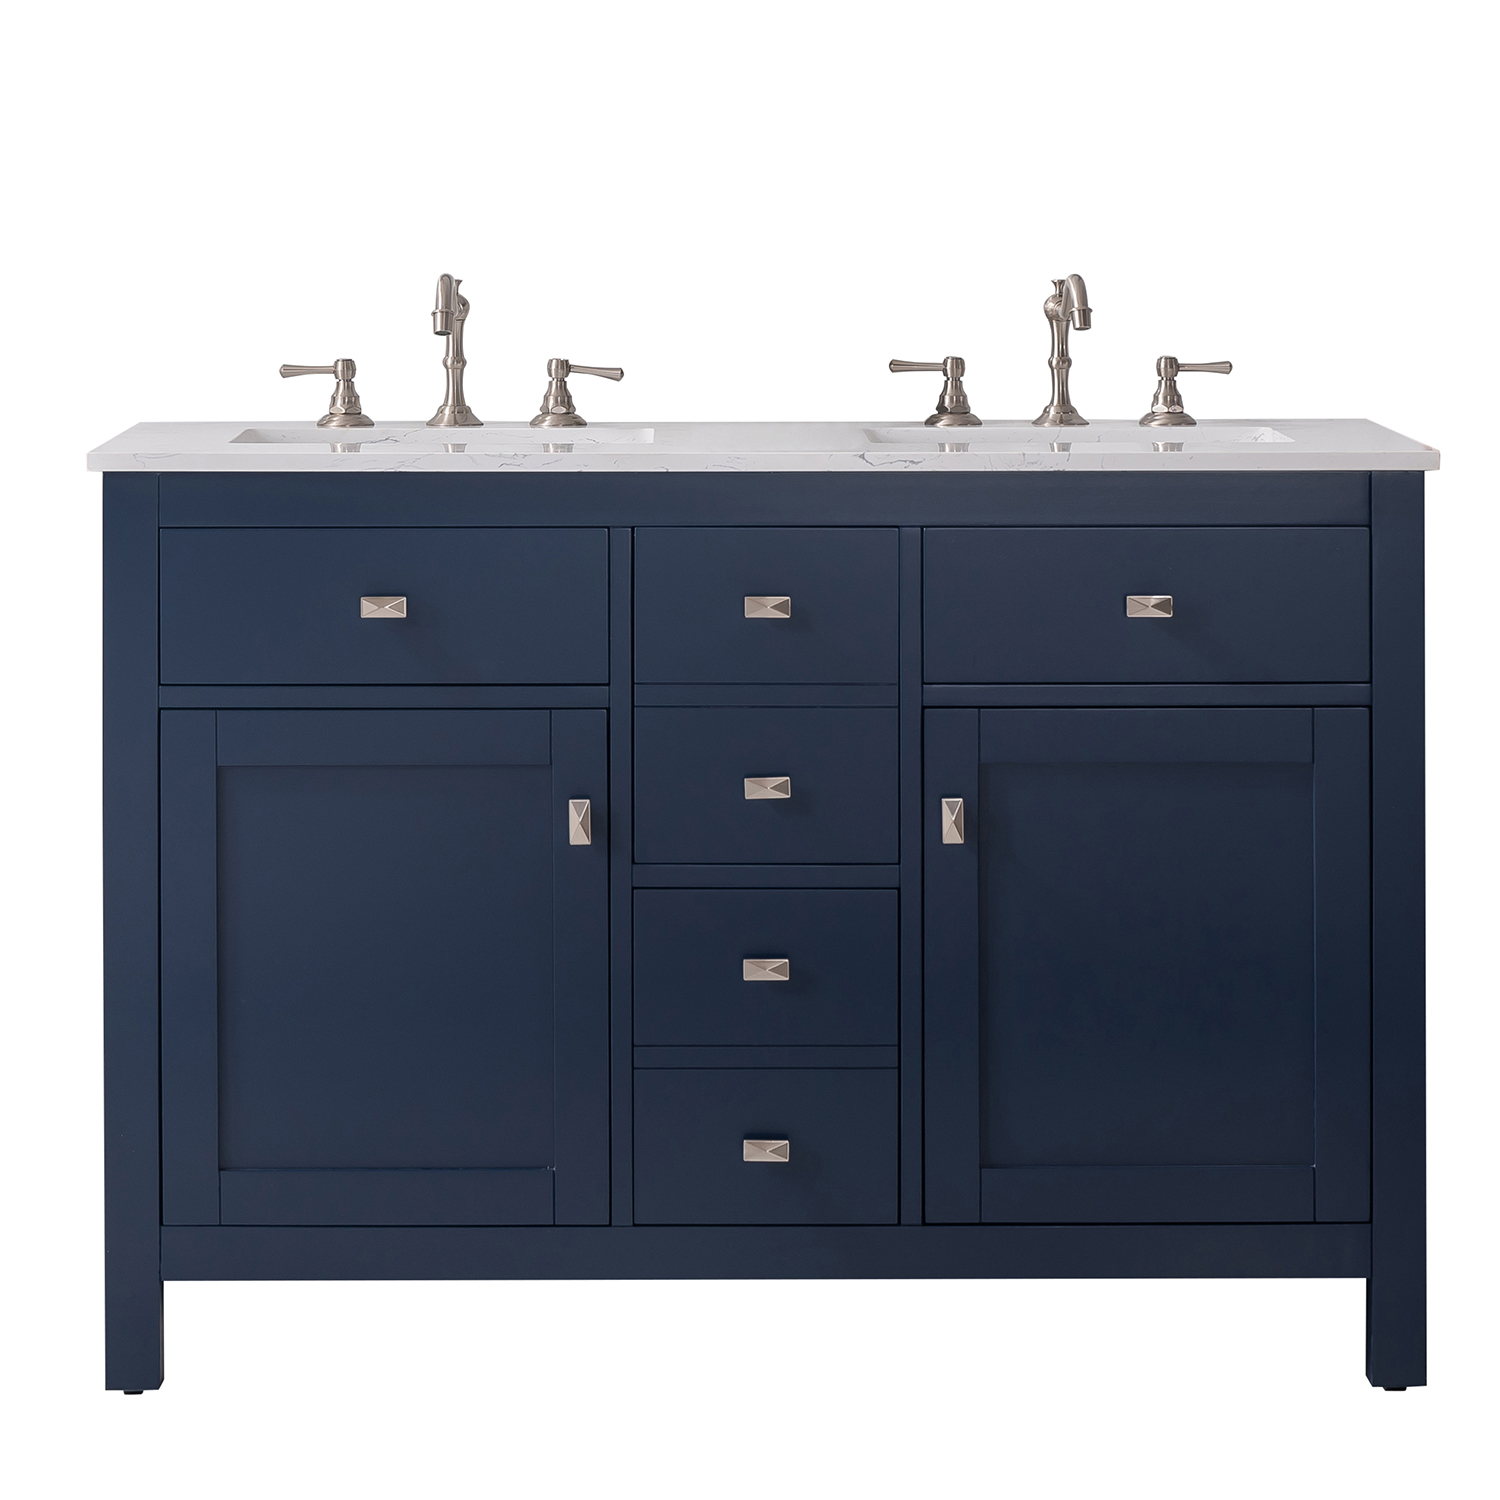 totti artemis 48 blue transitional double sink bathroom vanity w white carrara style man made stone top